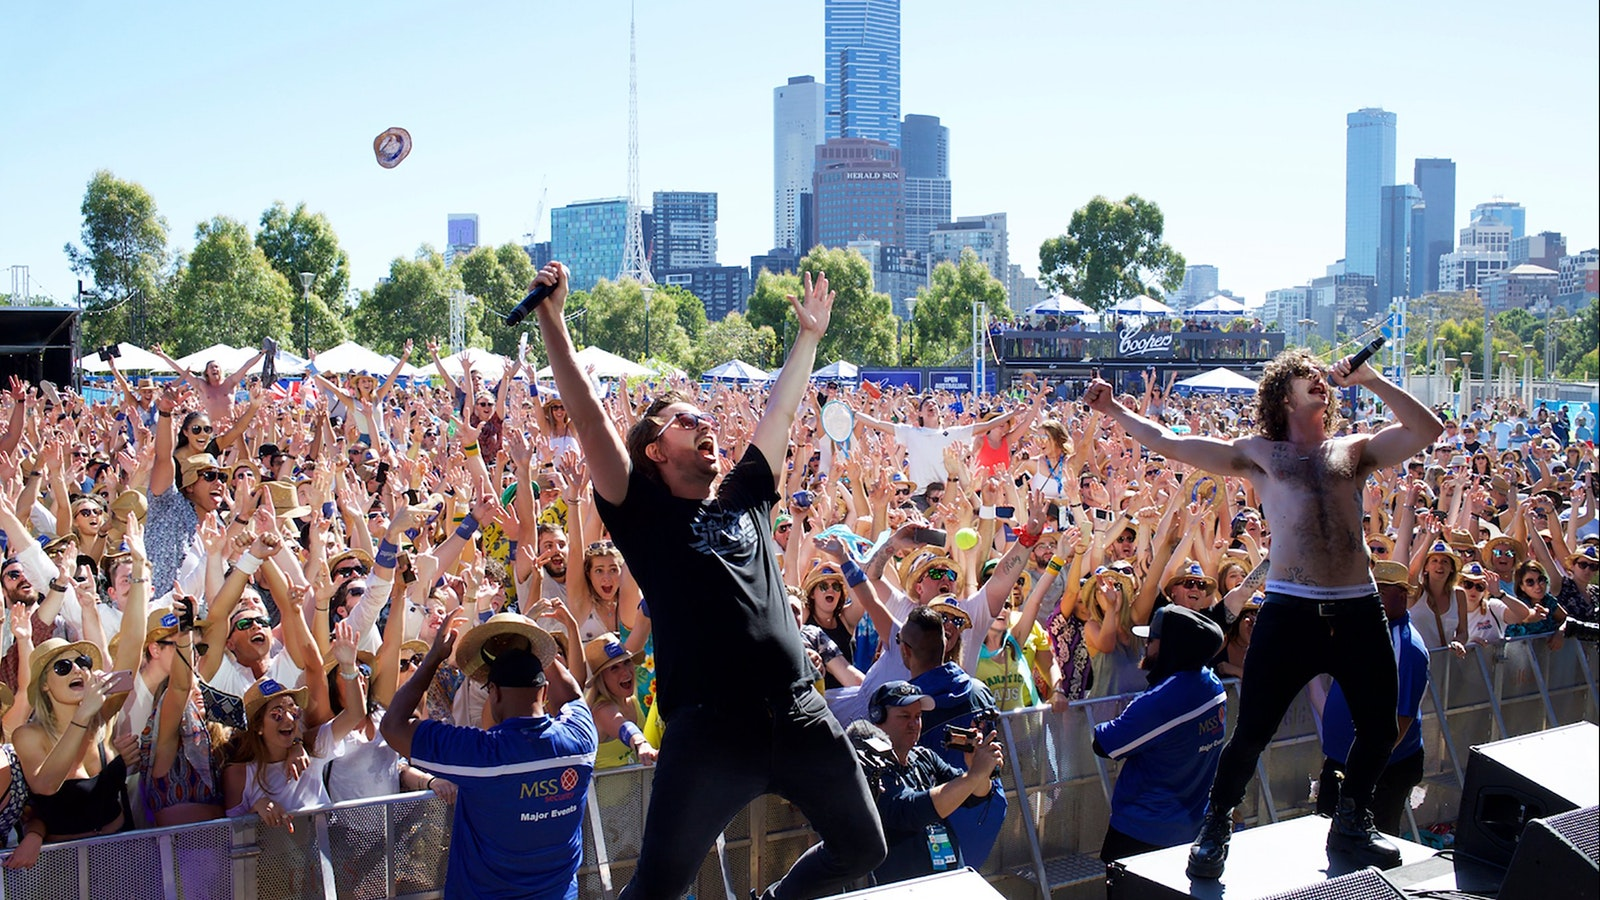 The AO Live Stage has become one of Melbourne's biggest parties hosting some of the hottest Australi